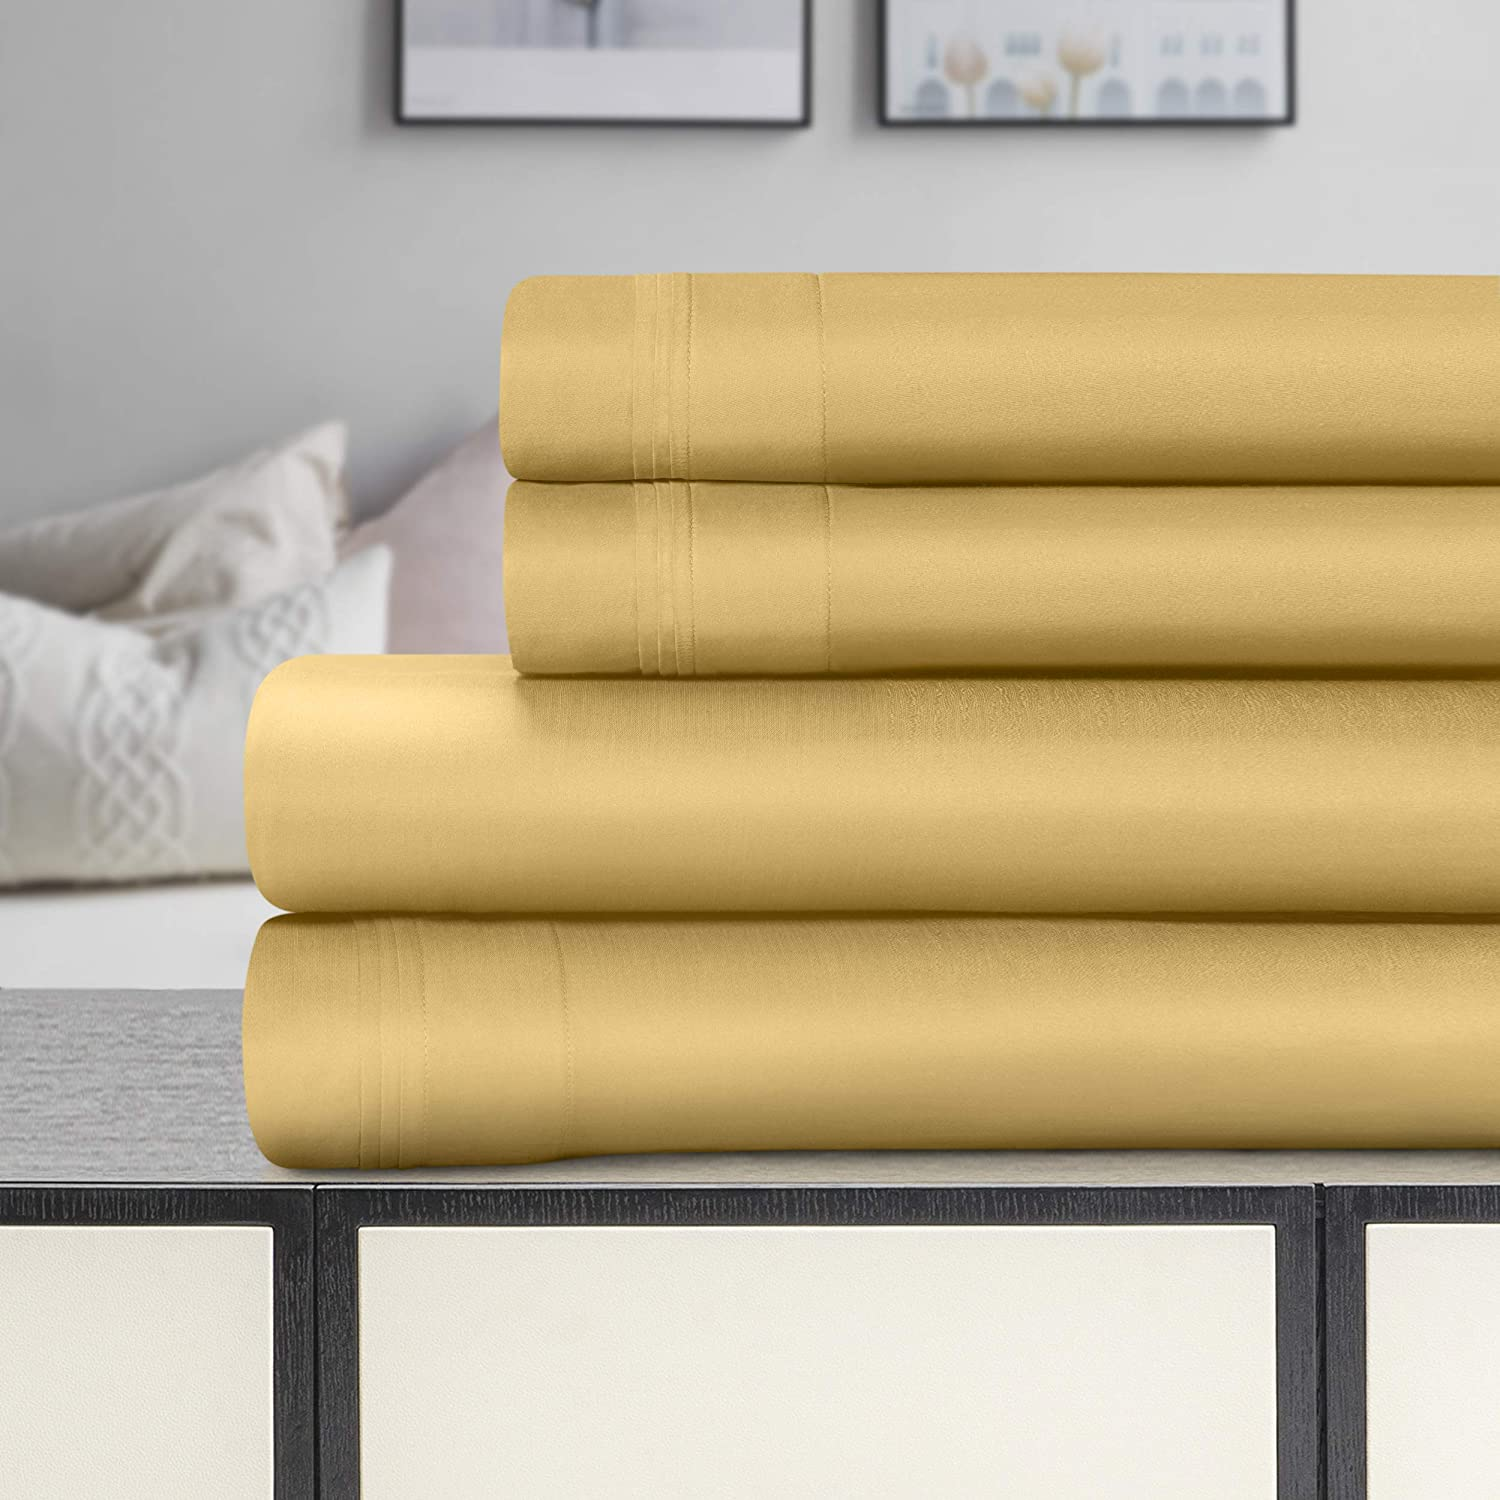 SUPERIOR Cotton Bed Sheet Set Count 1500 Challenge Large discharge sale the lowest price Solid Egyptian Thread